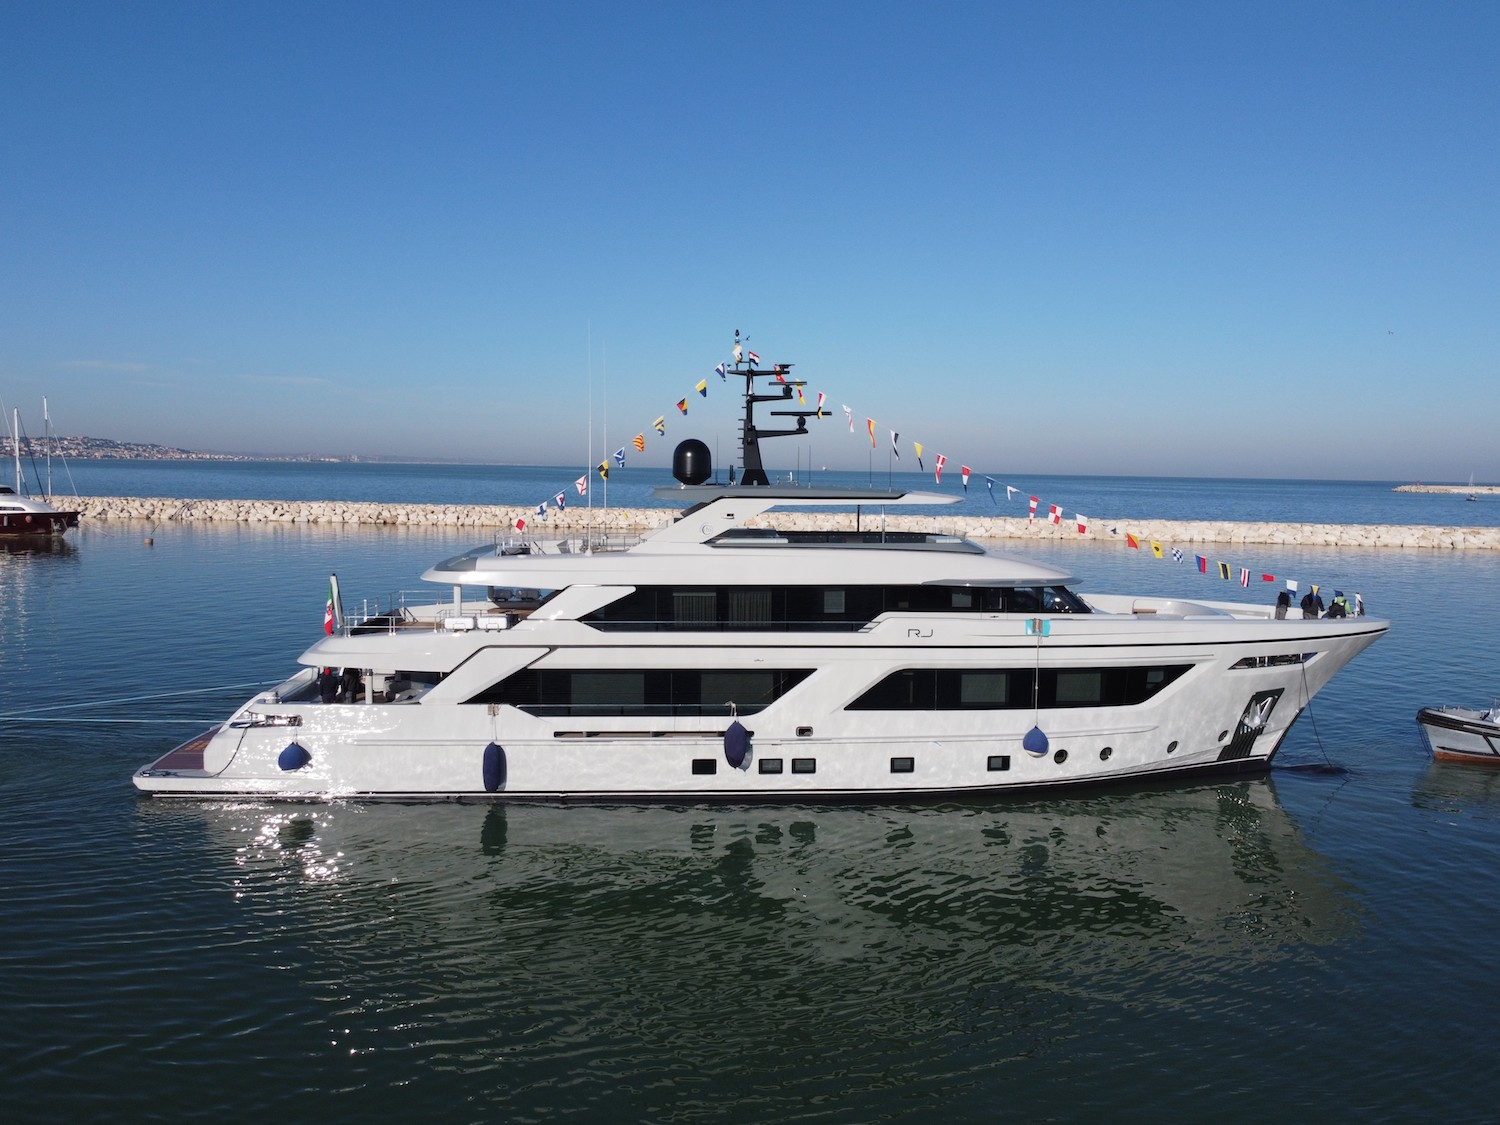 motor yacht RJ 130 launched